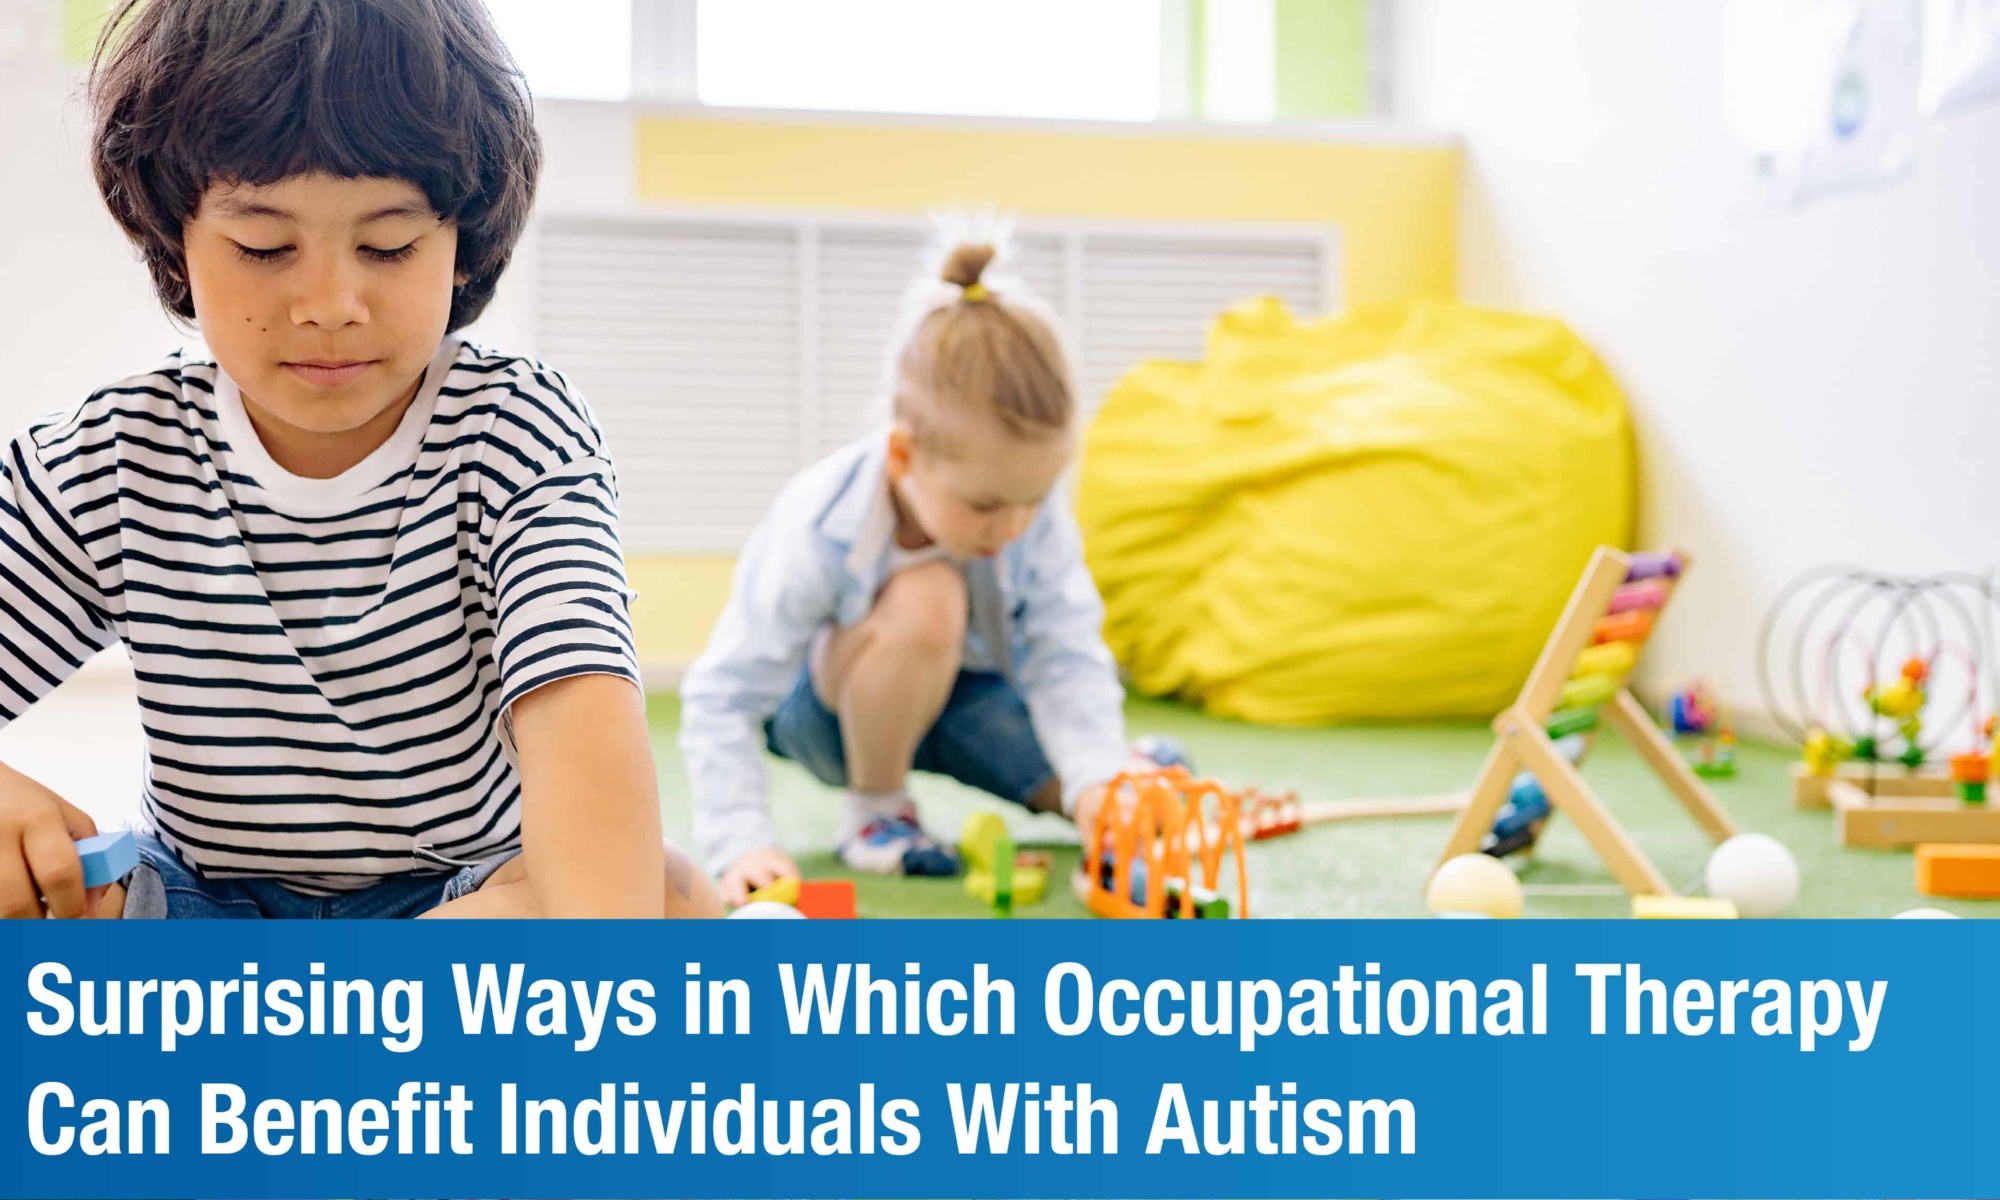 Surprising Ways in Which Occupational Therapy Can Benefit Individuals With Autism